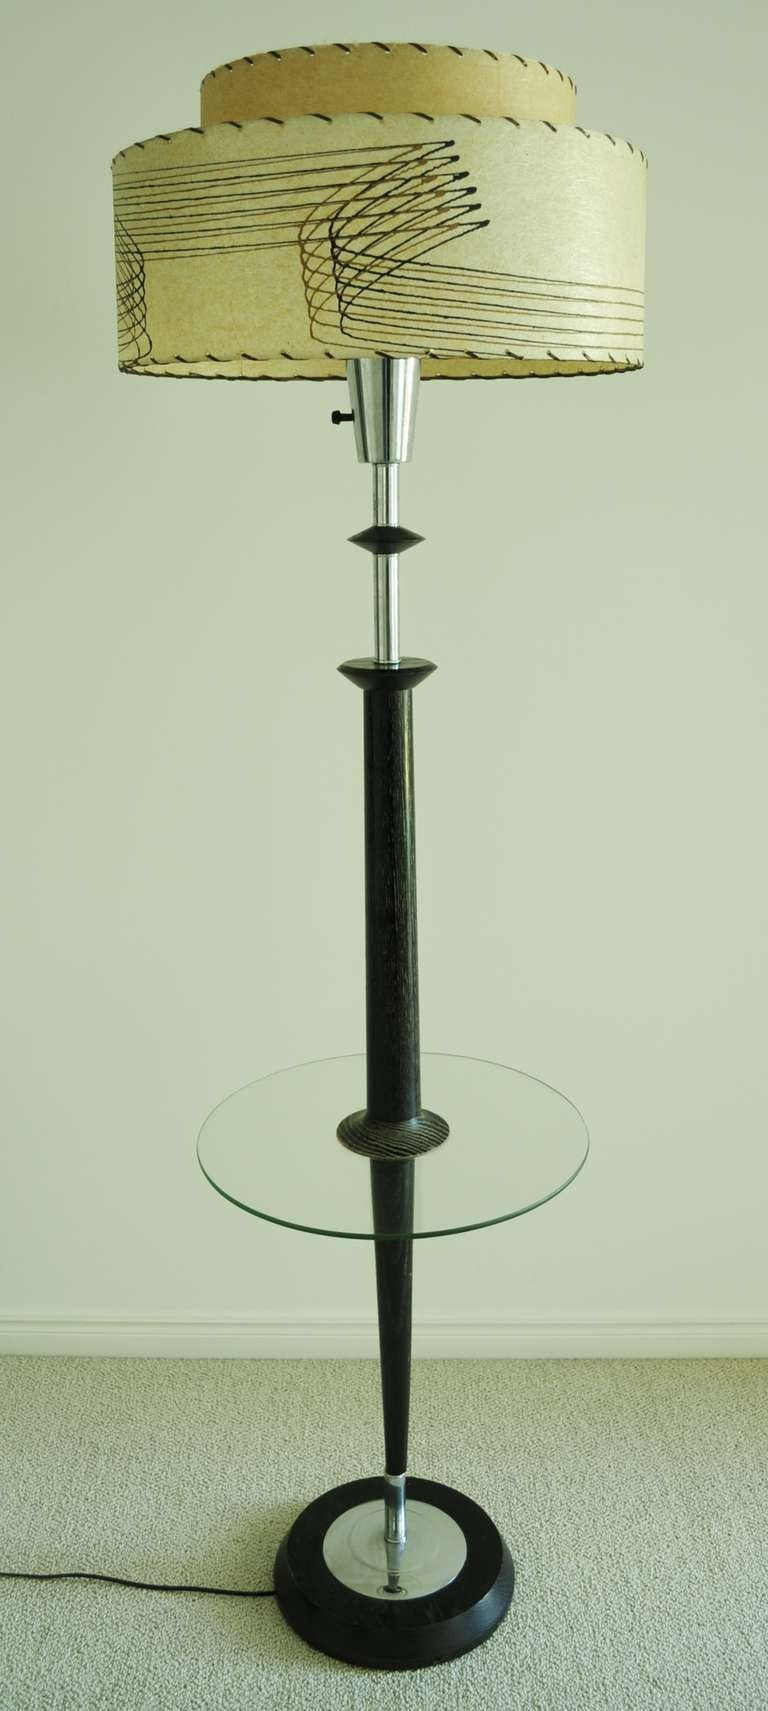 This fabulous American Mid-Century Modern, black cerused oak  floor lamp with chrome accents, original glass reflector and thick circular glass integral table by Majestic is near mint. The original two-tier fiberglass shade is in perfect condition,